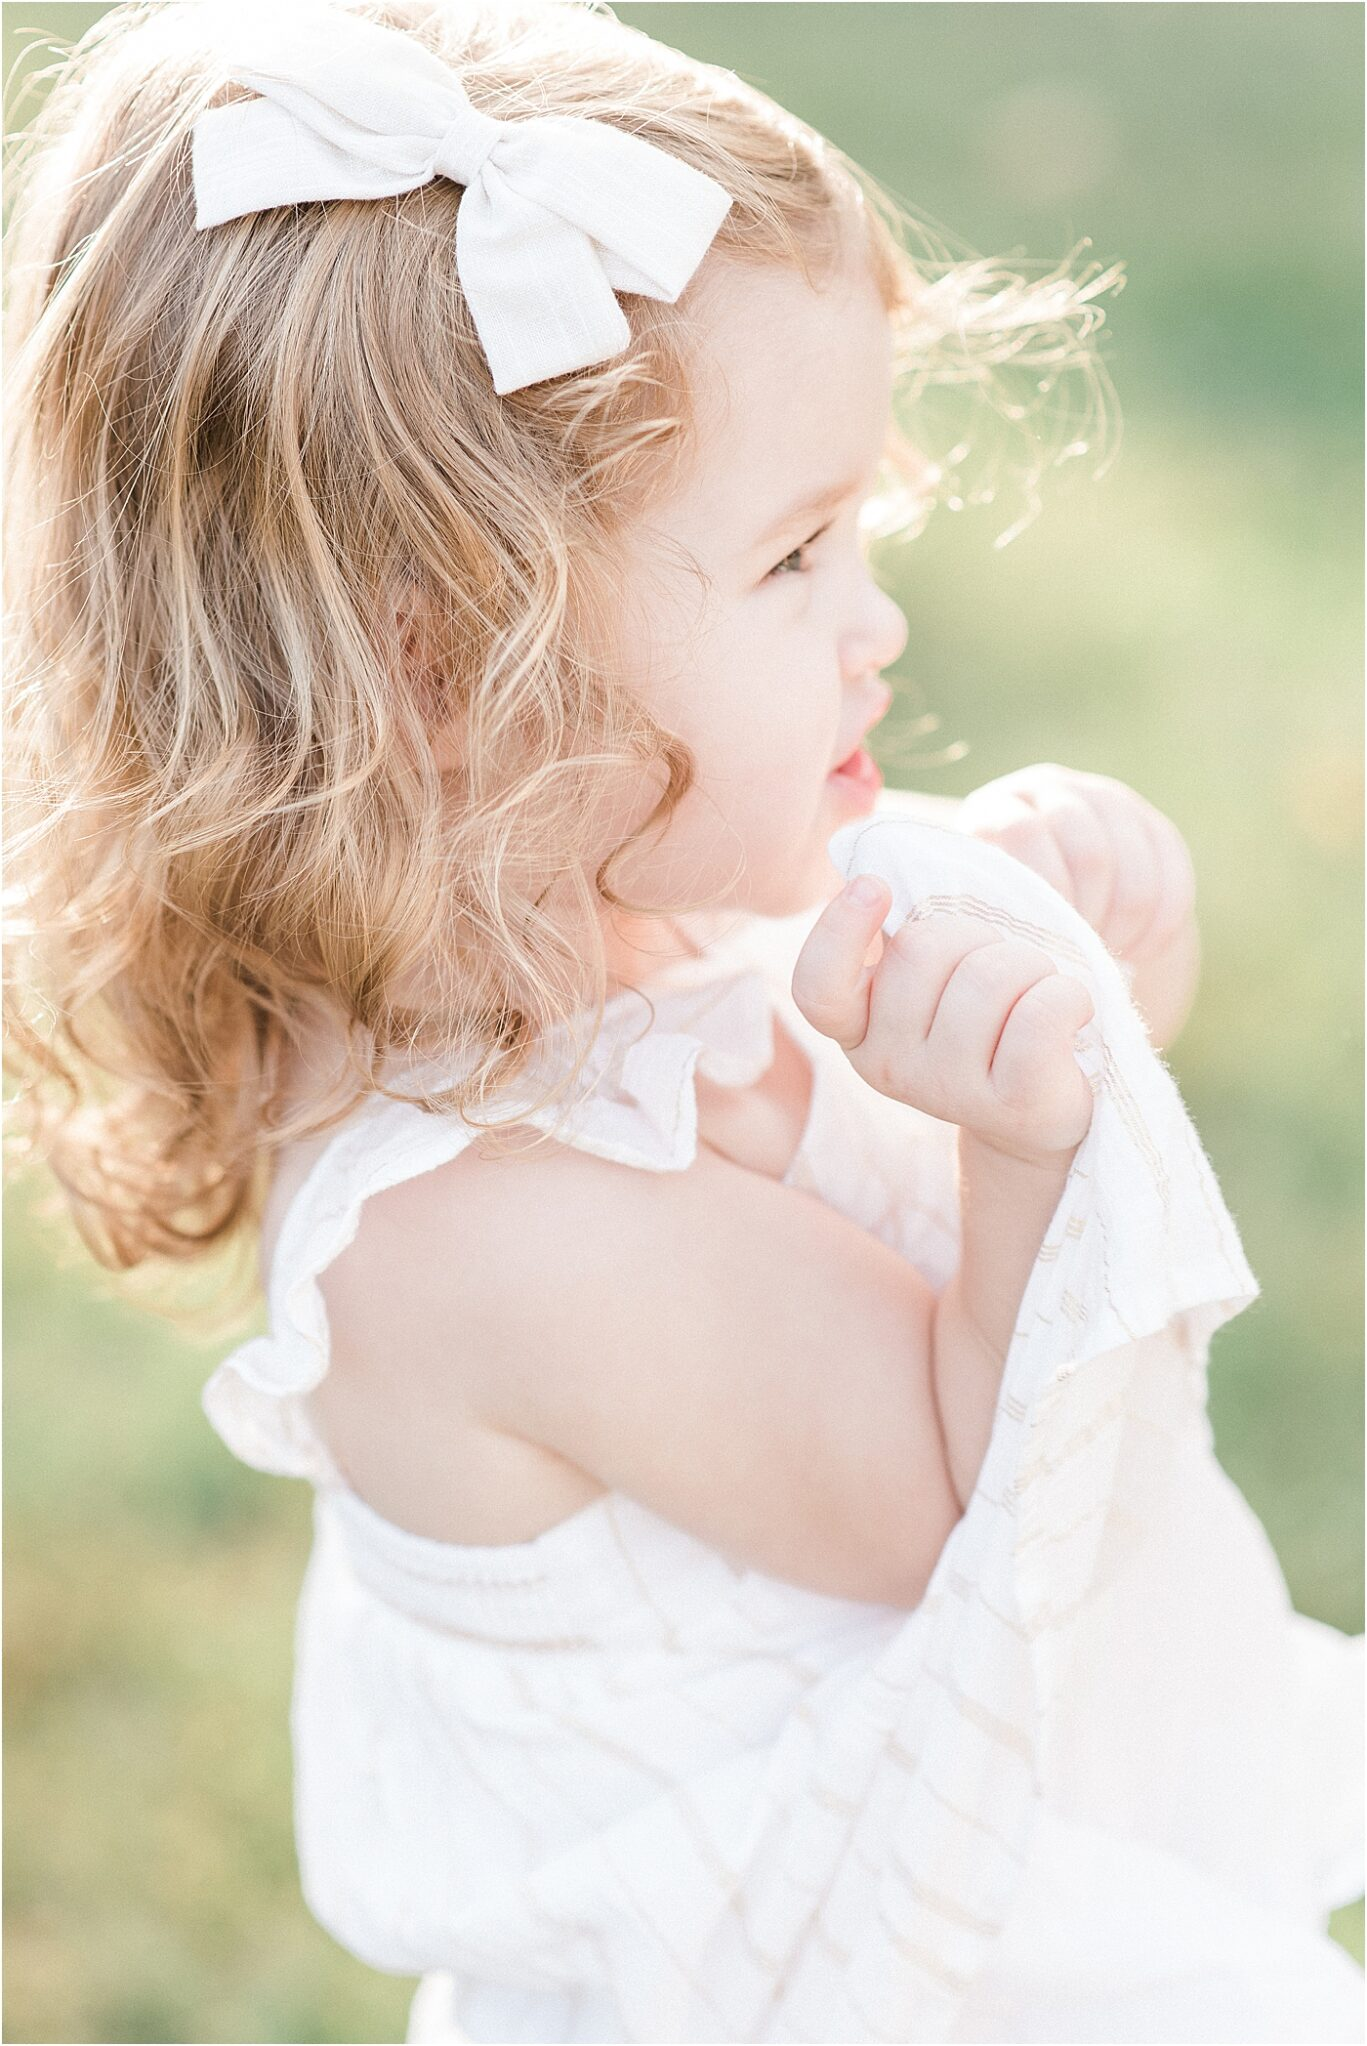 Sweet photo of toddler-aged girl during family session with Lindsay Konopa Photography in Noblesville, Indiana.